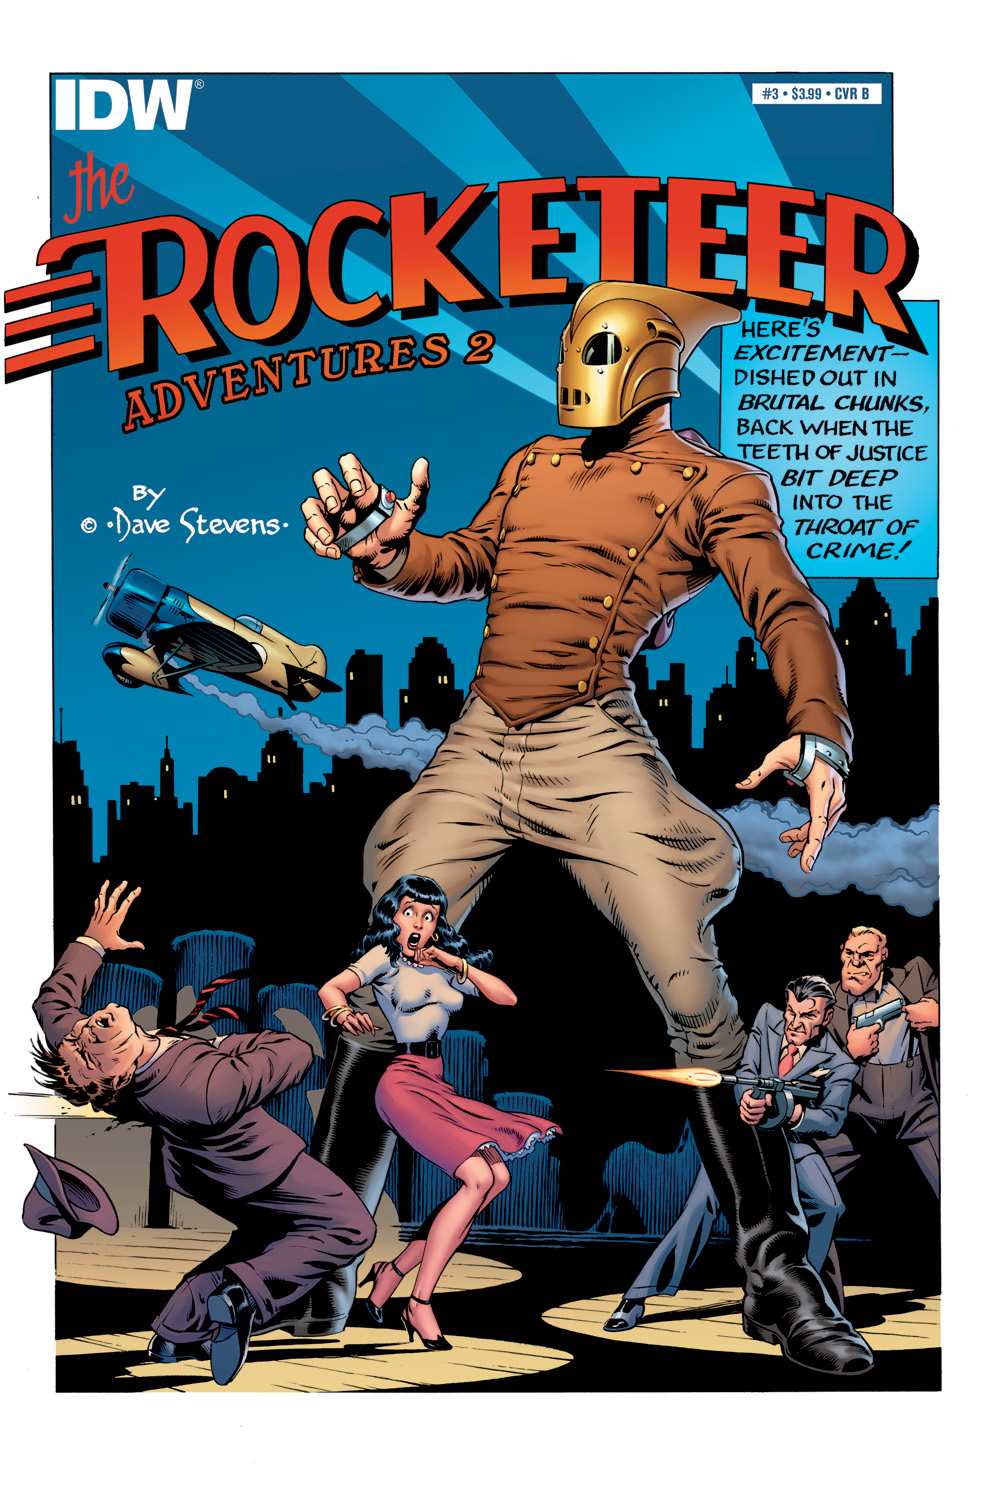 Rocketeer Adventures 2 #3